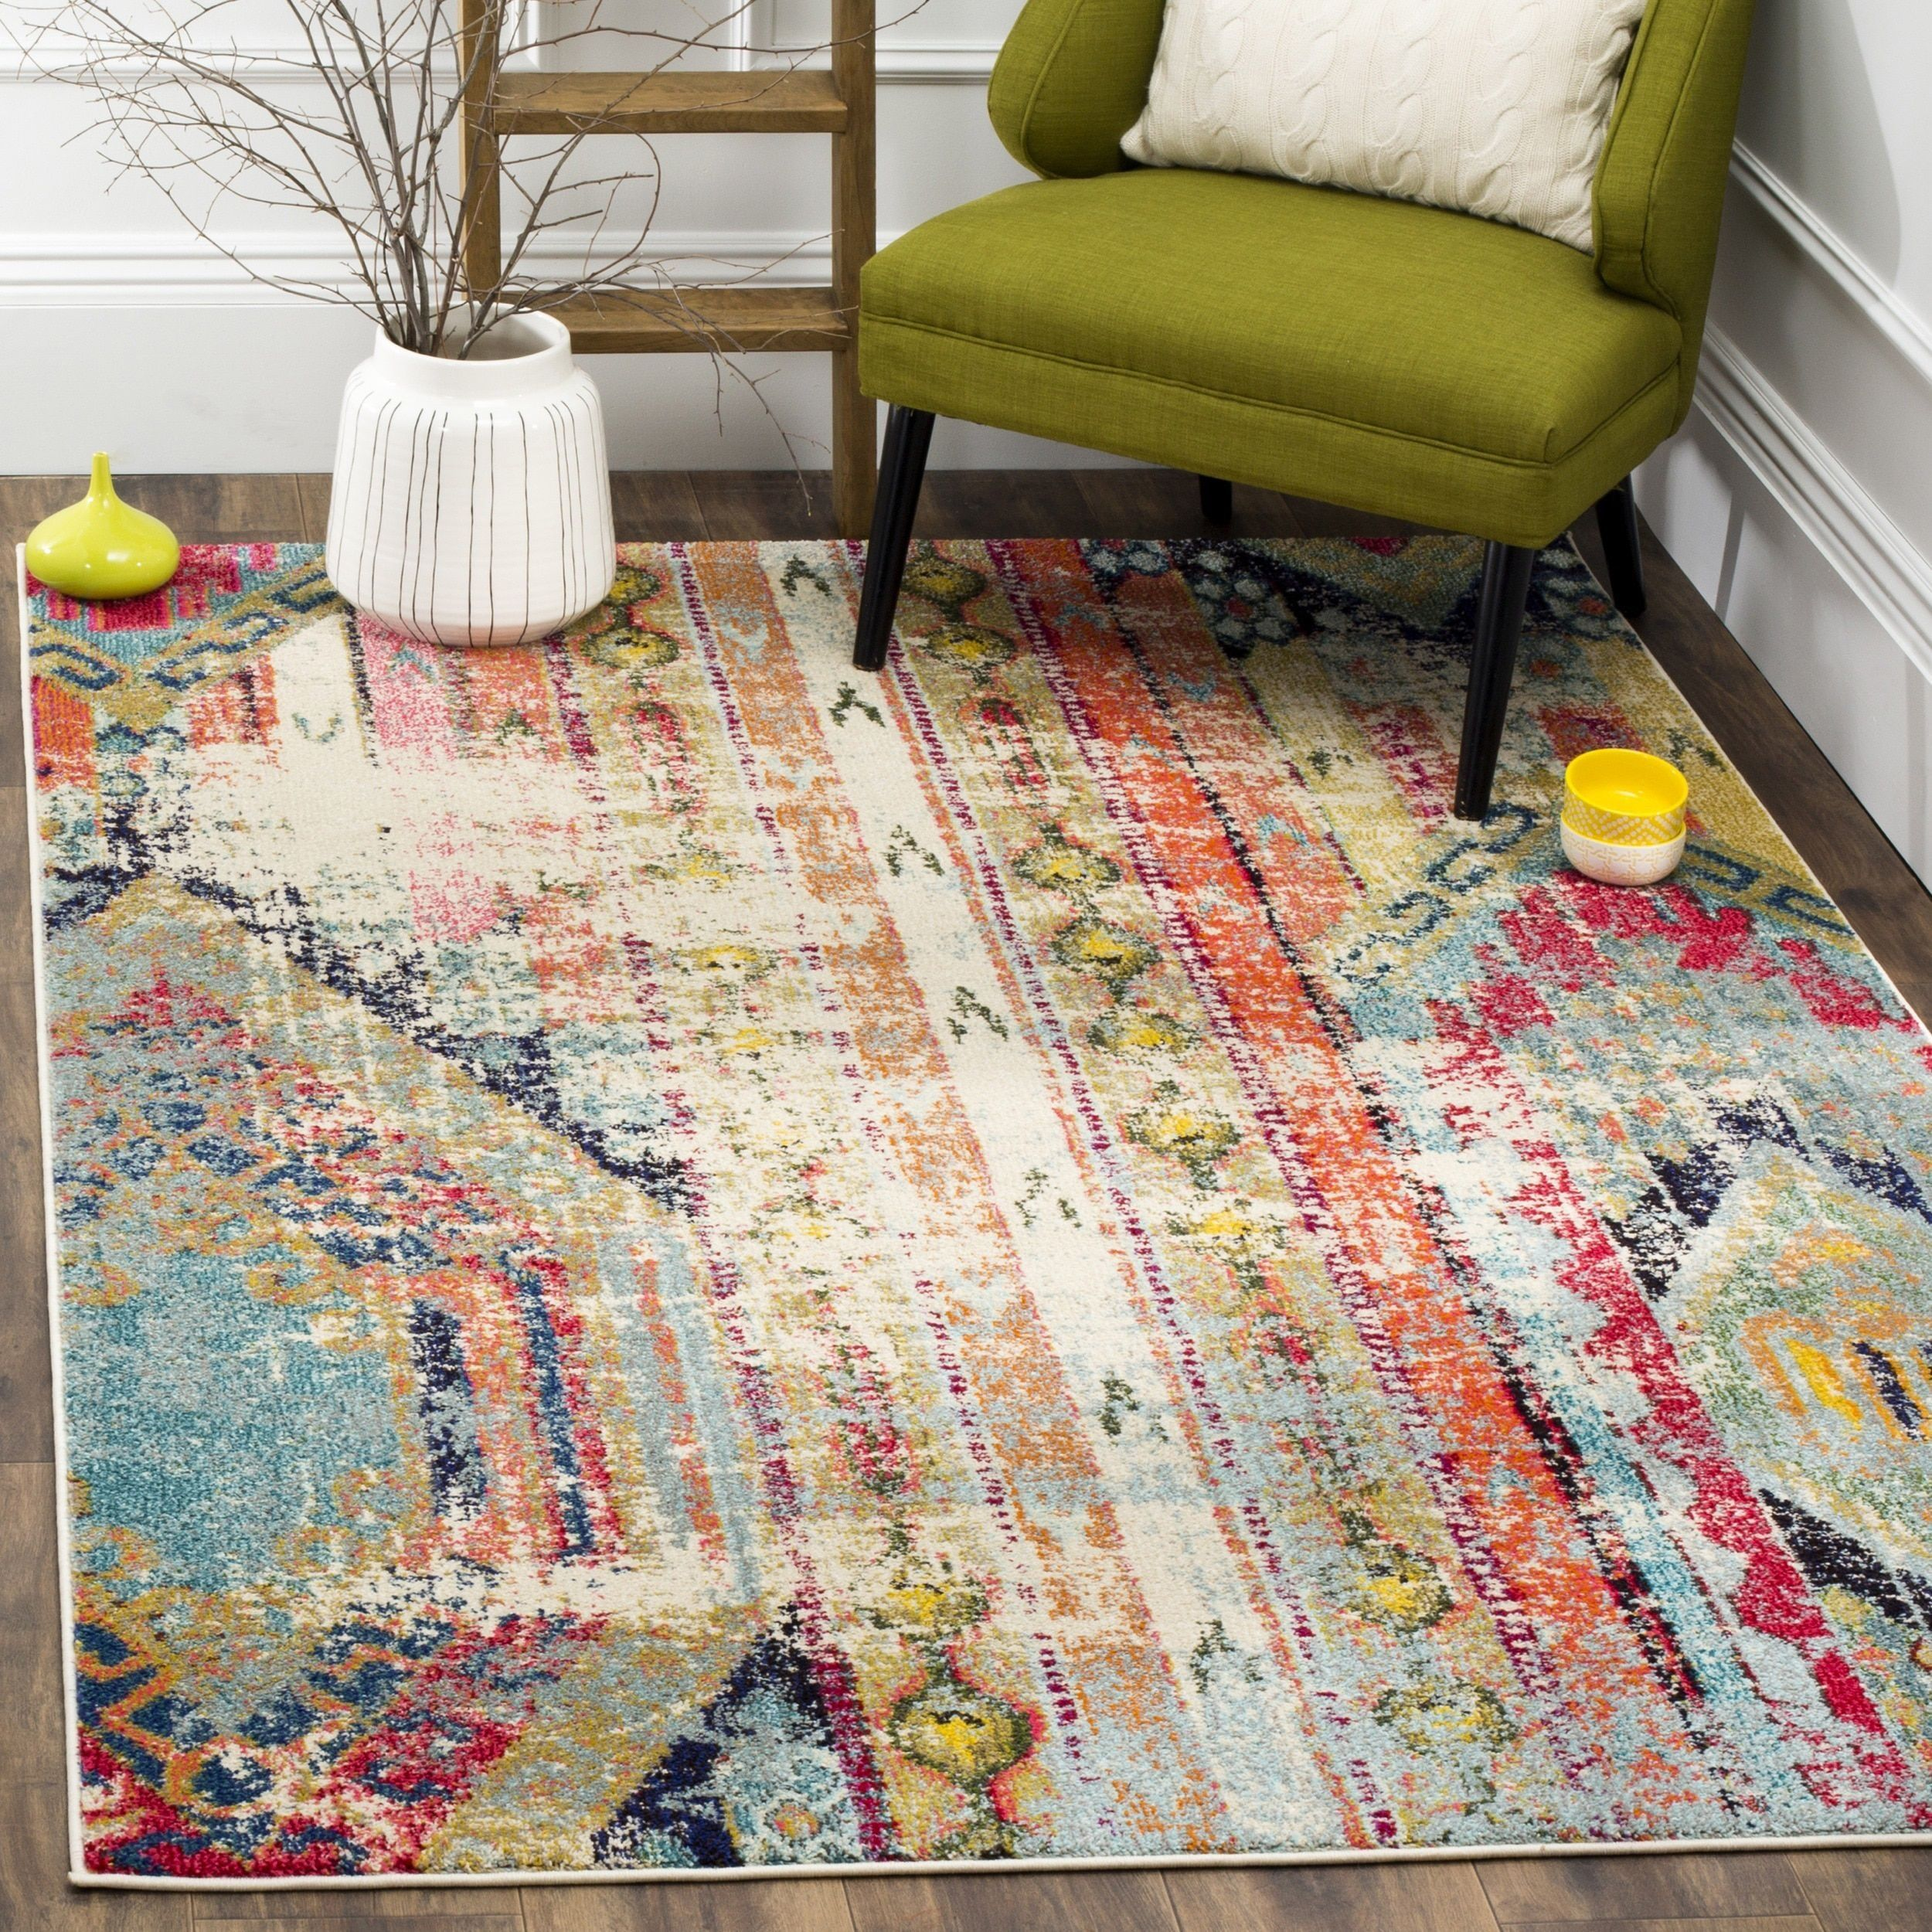 rug for living room size%0A Room